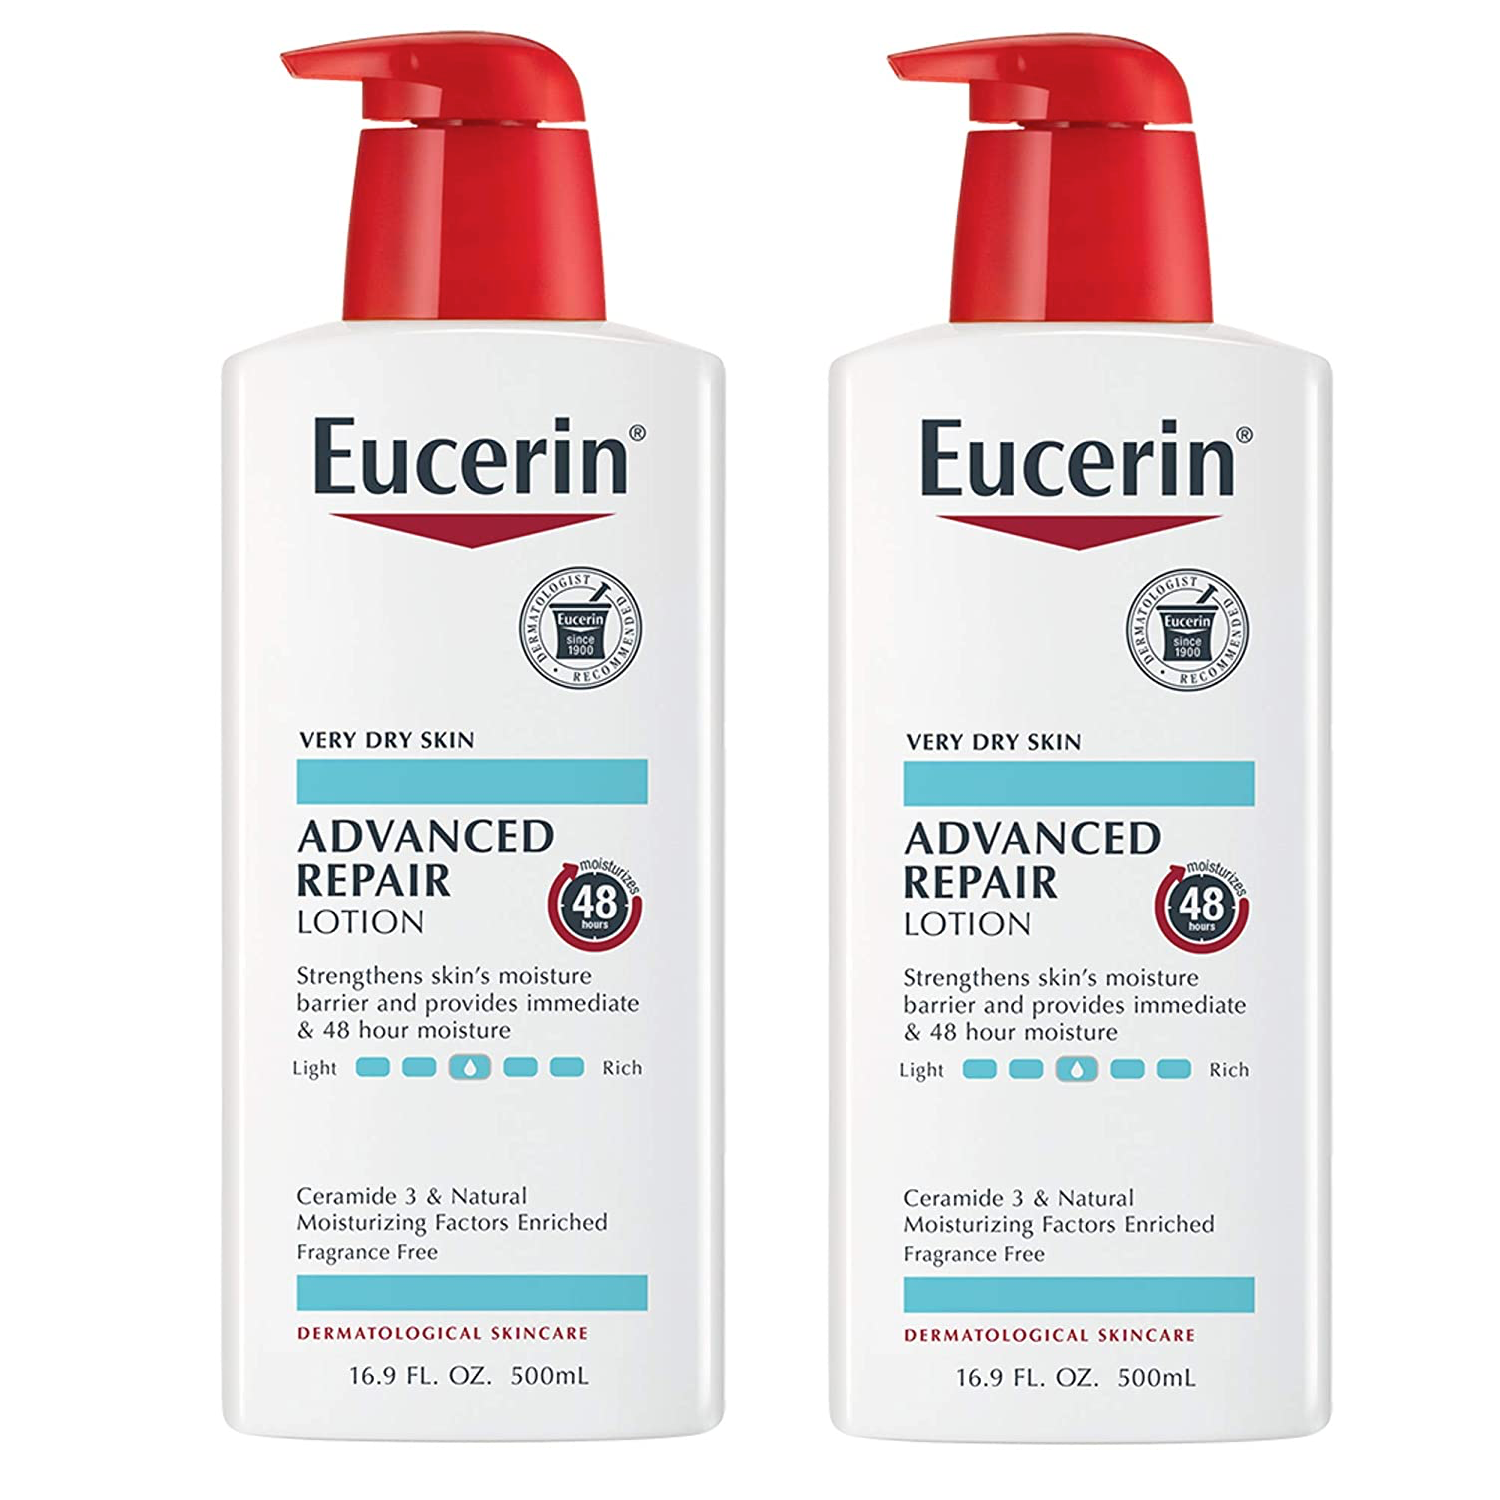 WHOLESALE EUCERIN ADVANCED REPAIR LOTION 16.9 OZ (PACK OF 2) - 48 PIECE LOT